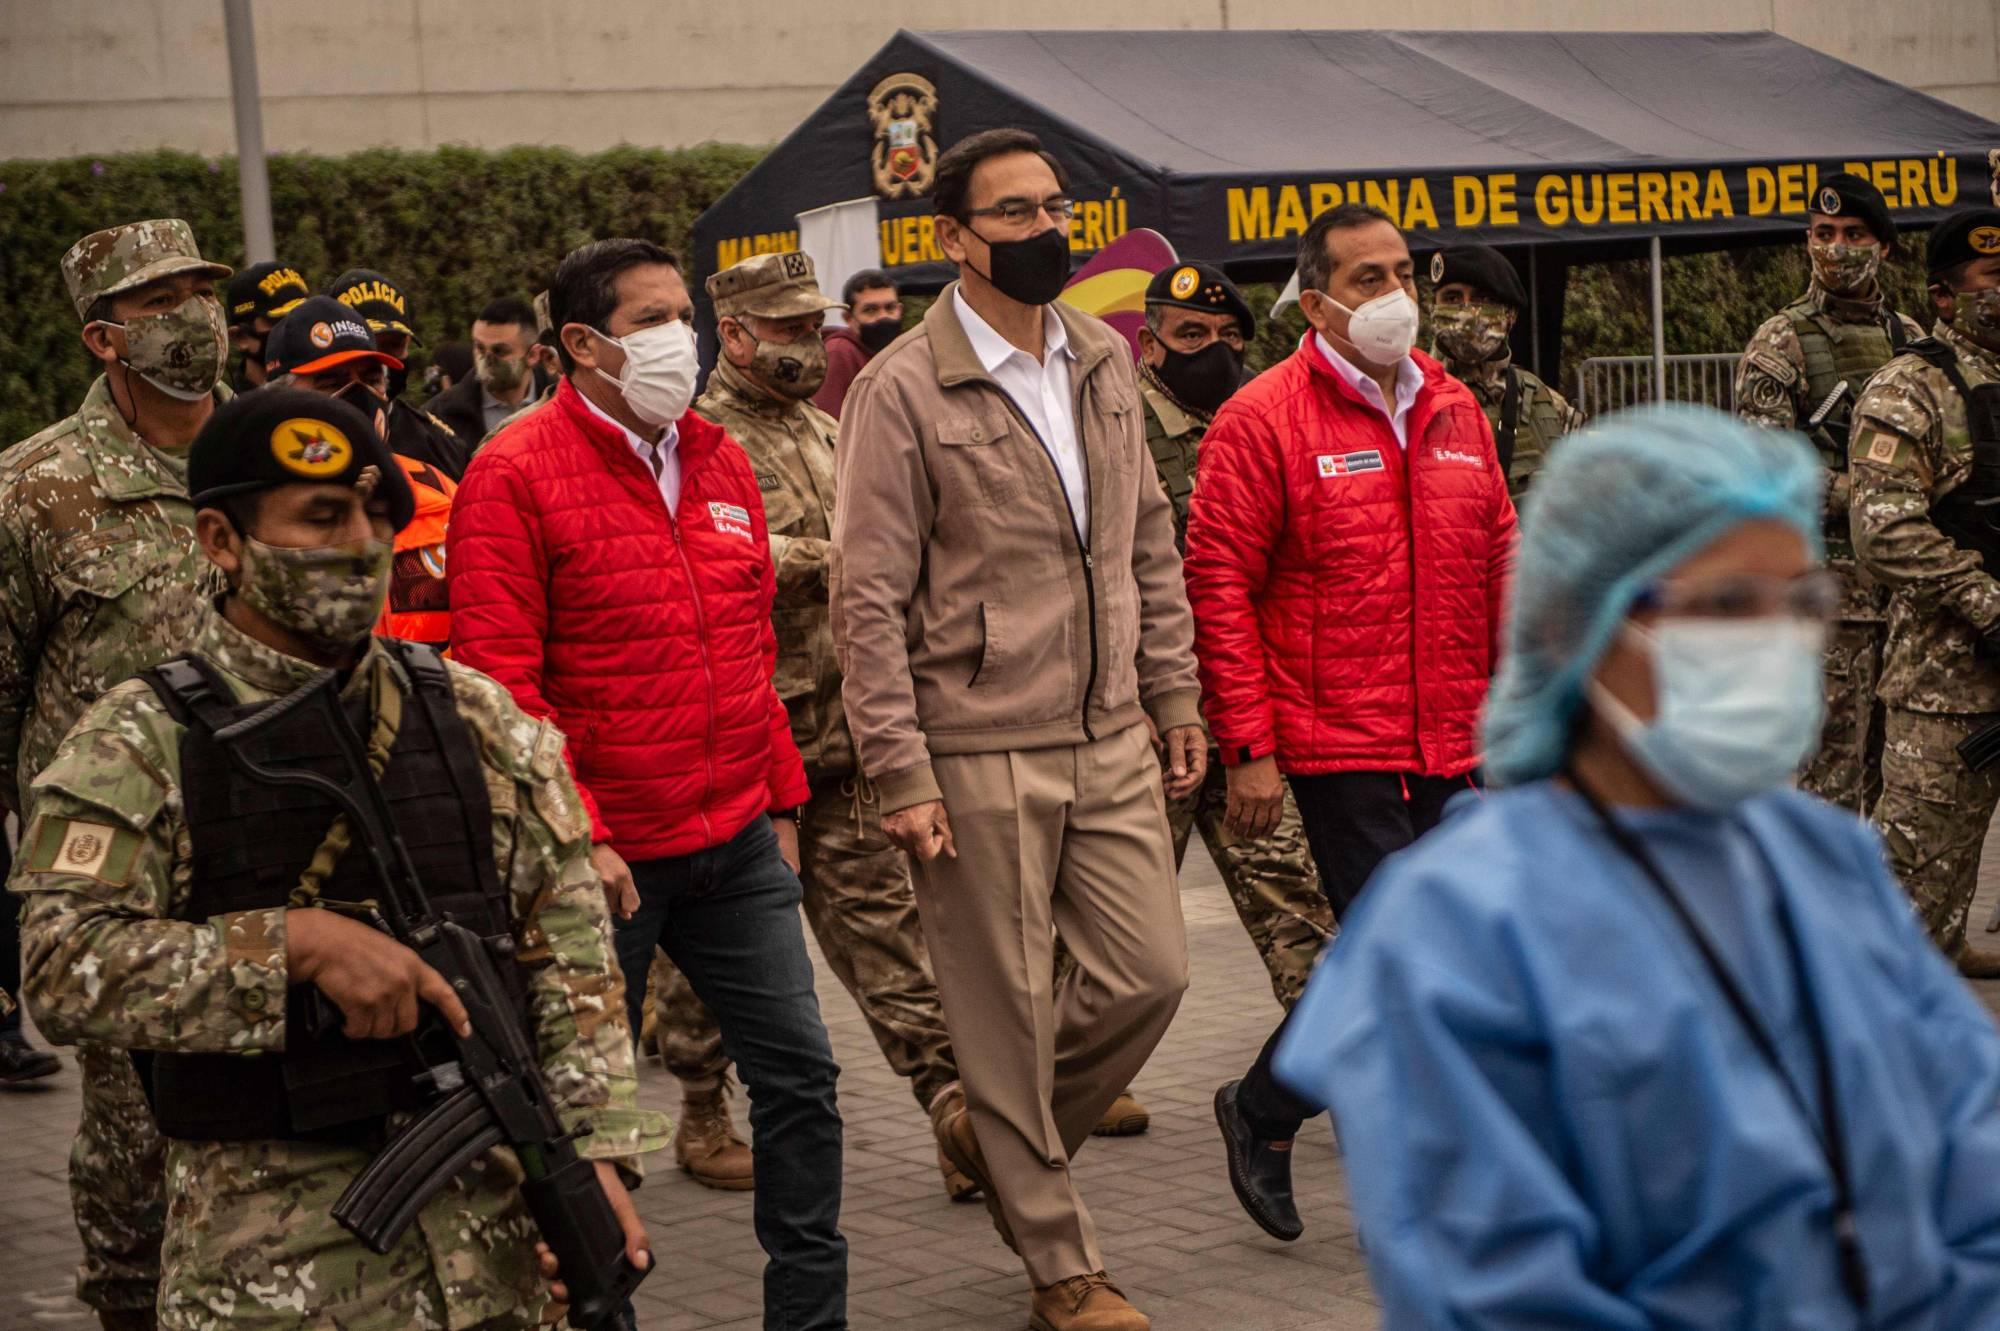 Peru's president, Martin Vizcarra (center), who's national economy is one of the worst performing globally amid the COVID-19 pandemic, oversees the distribution of supplies to those in need on the outskirts of Lima on Tuesday. | AFP-JIJI